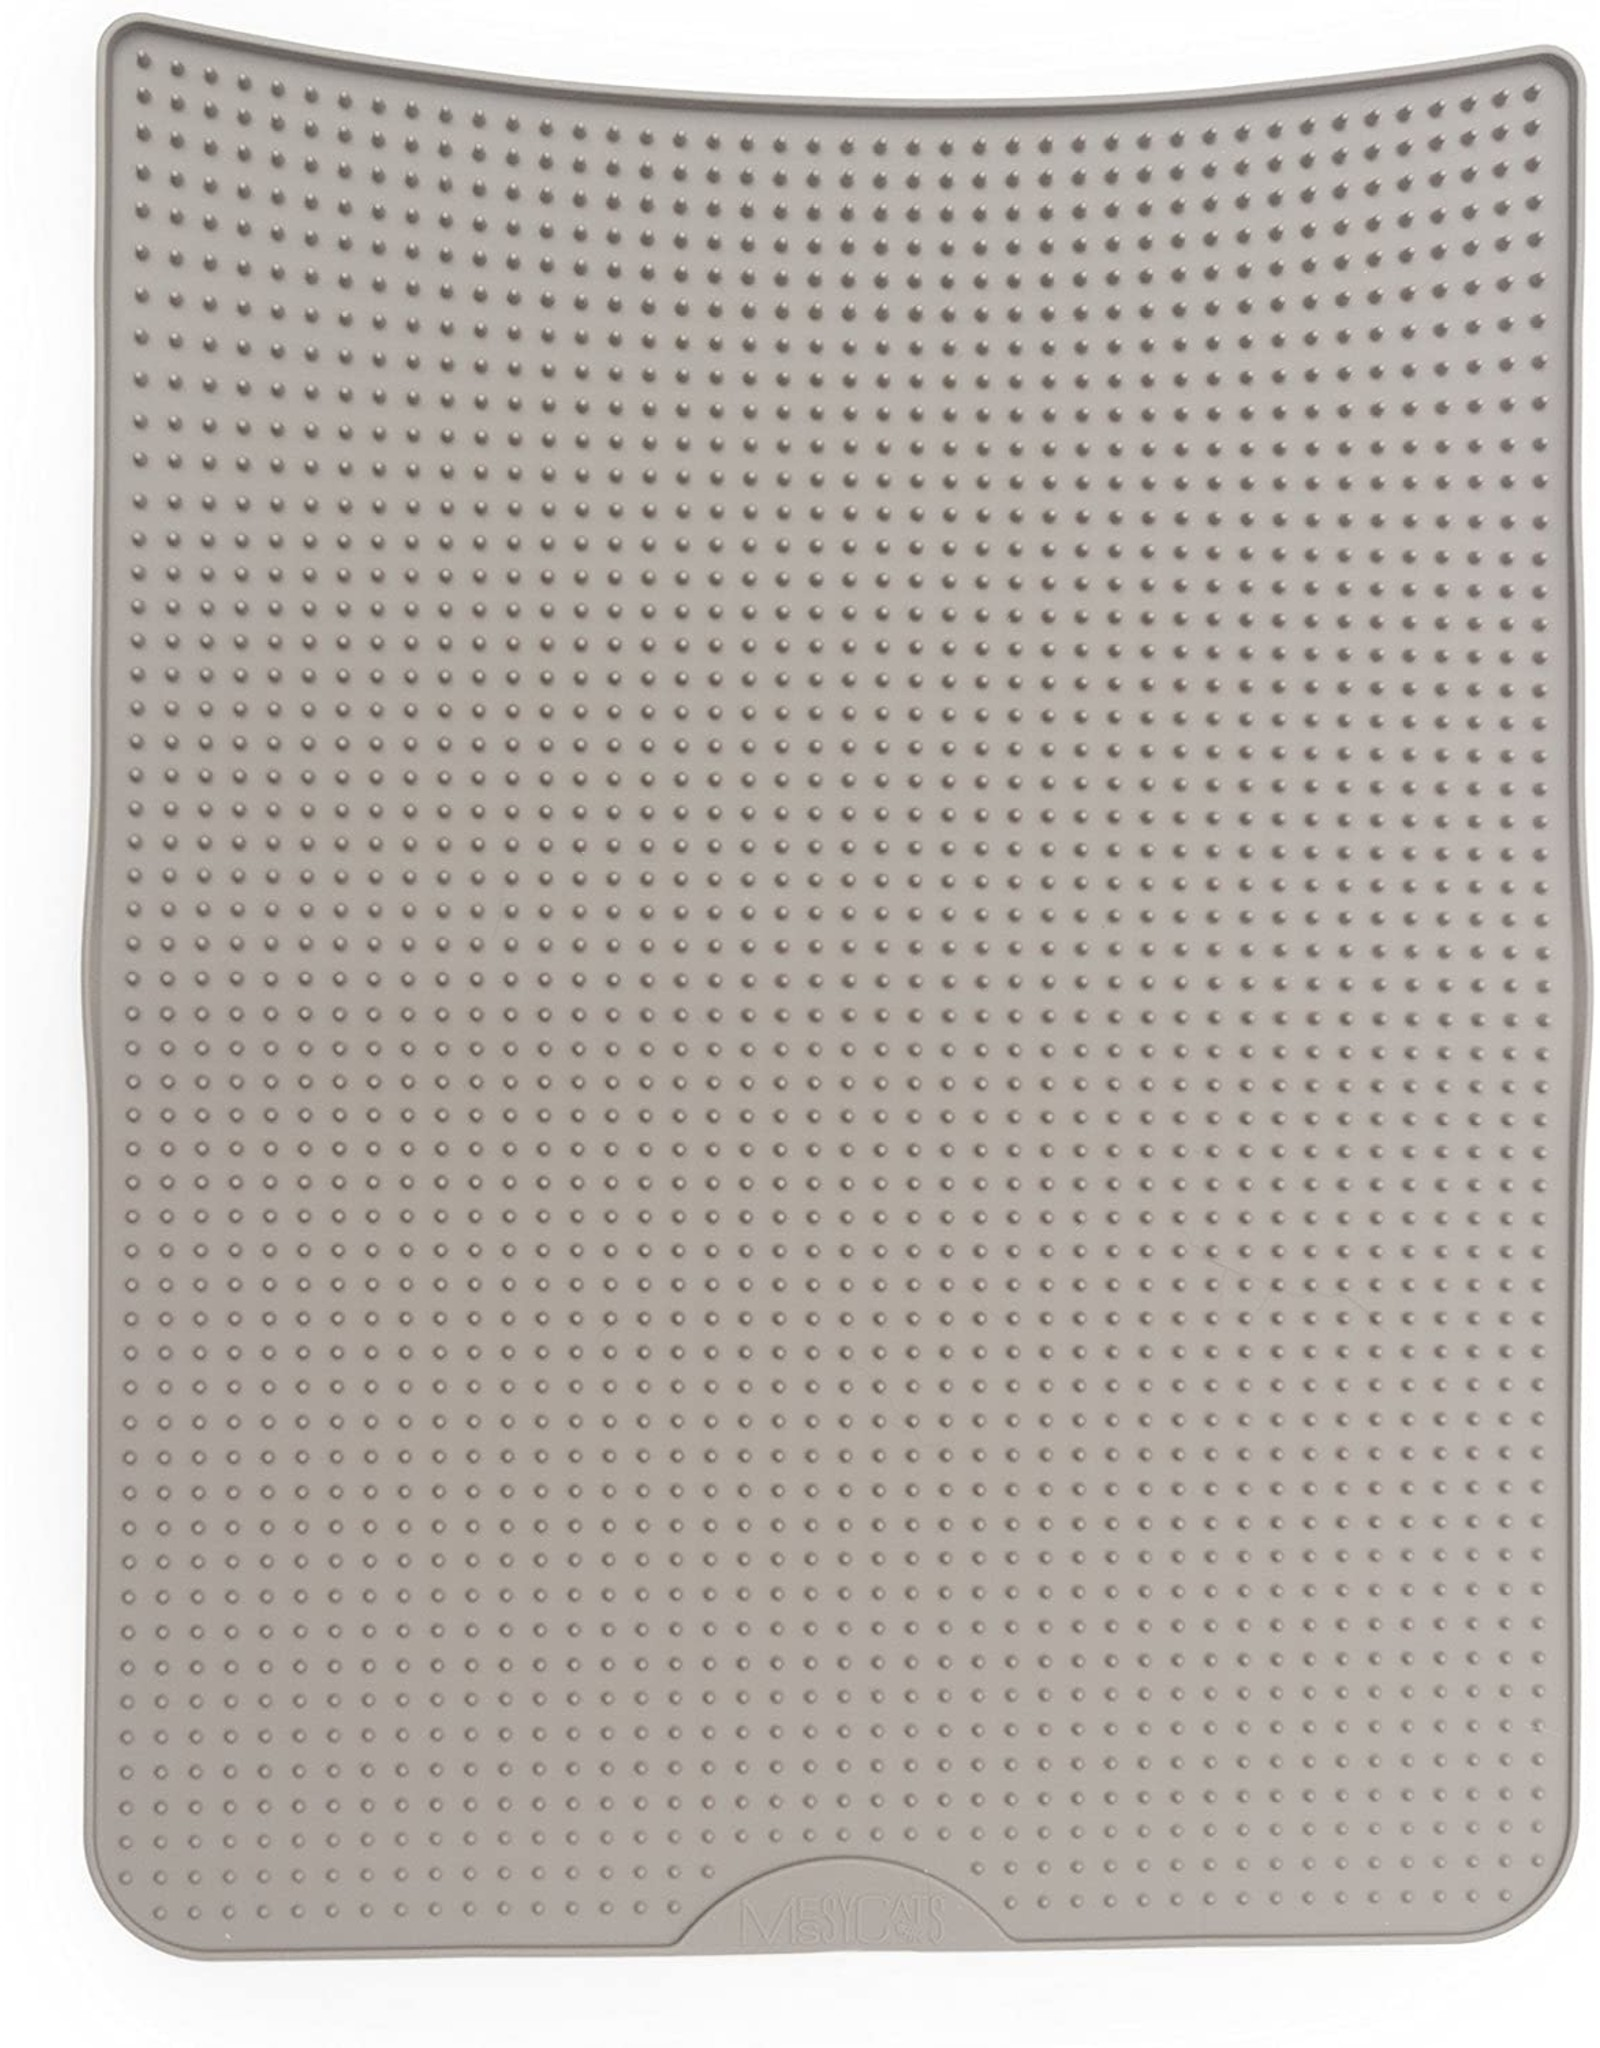 Messy Cats MESSY CATS tapis litiere silicone, gris